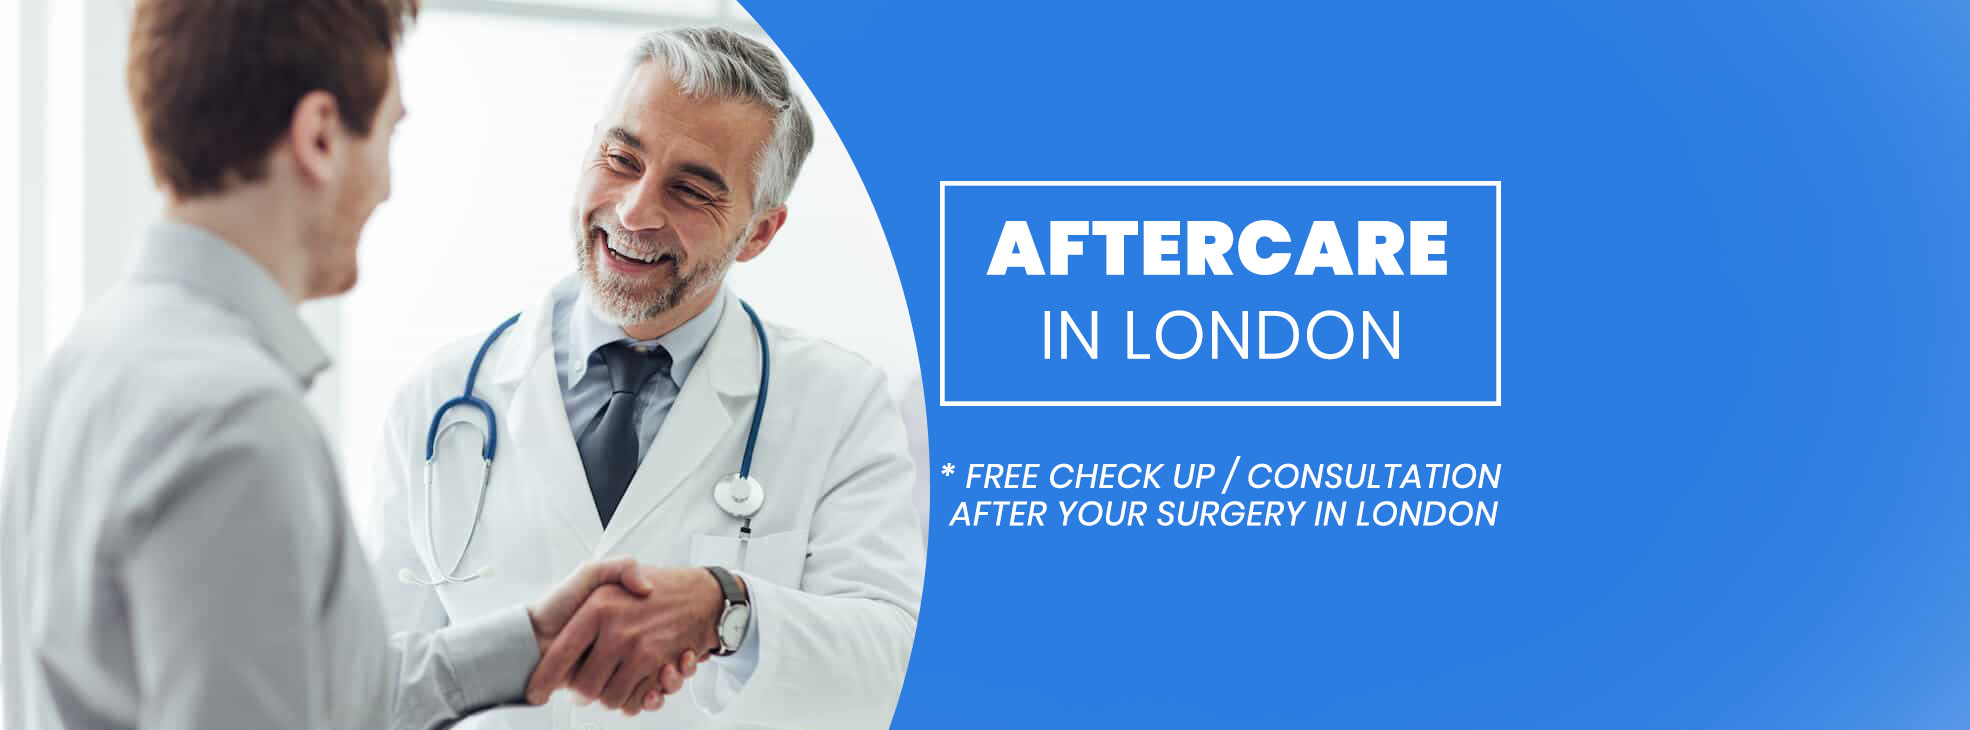 Aftercare in London Clinic Center